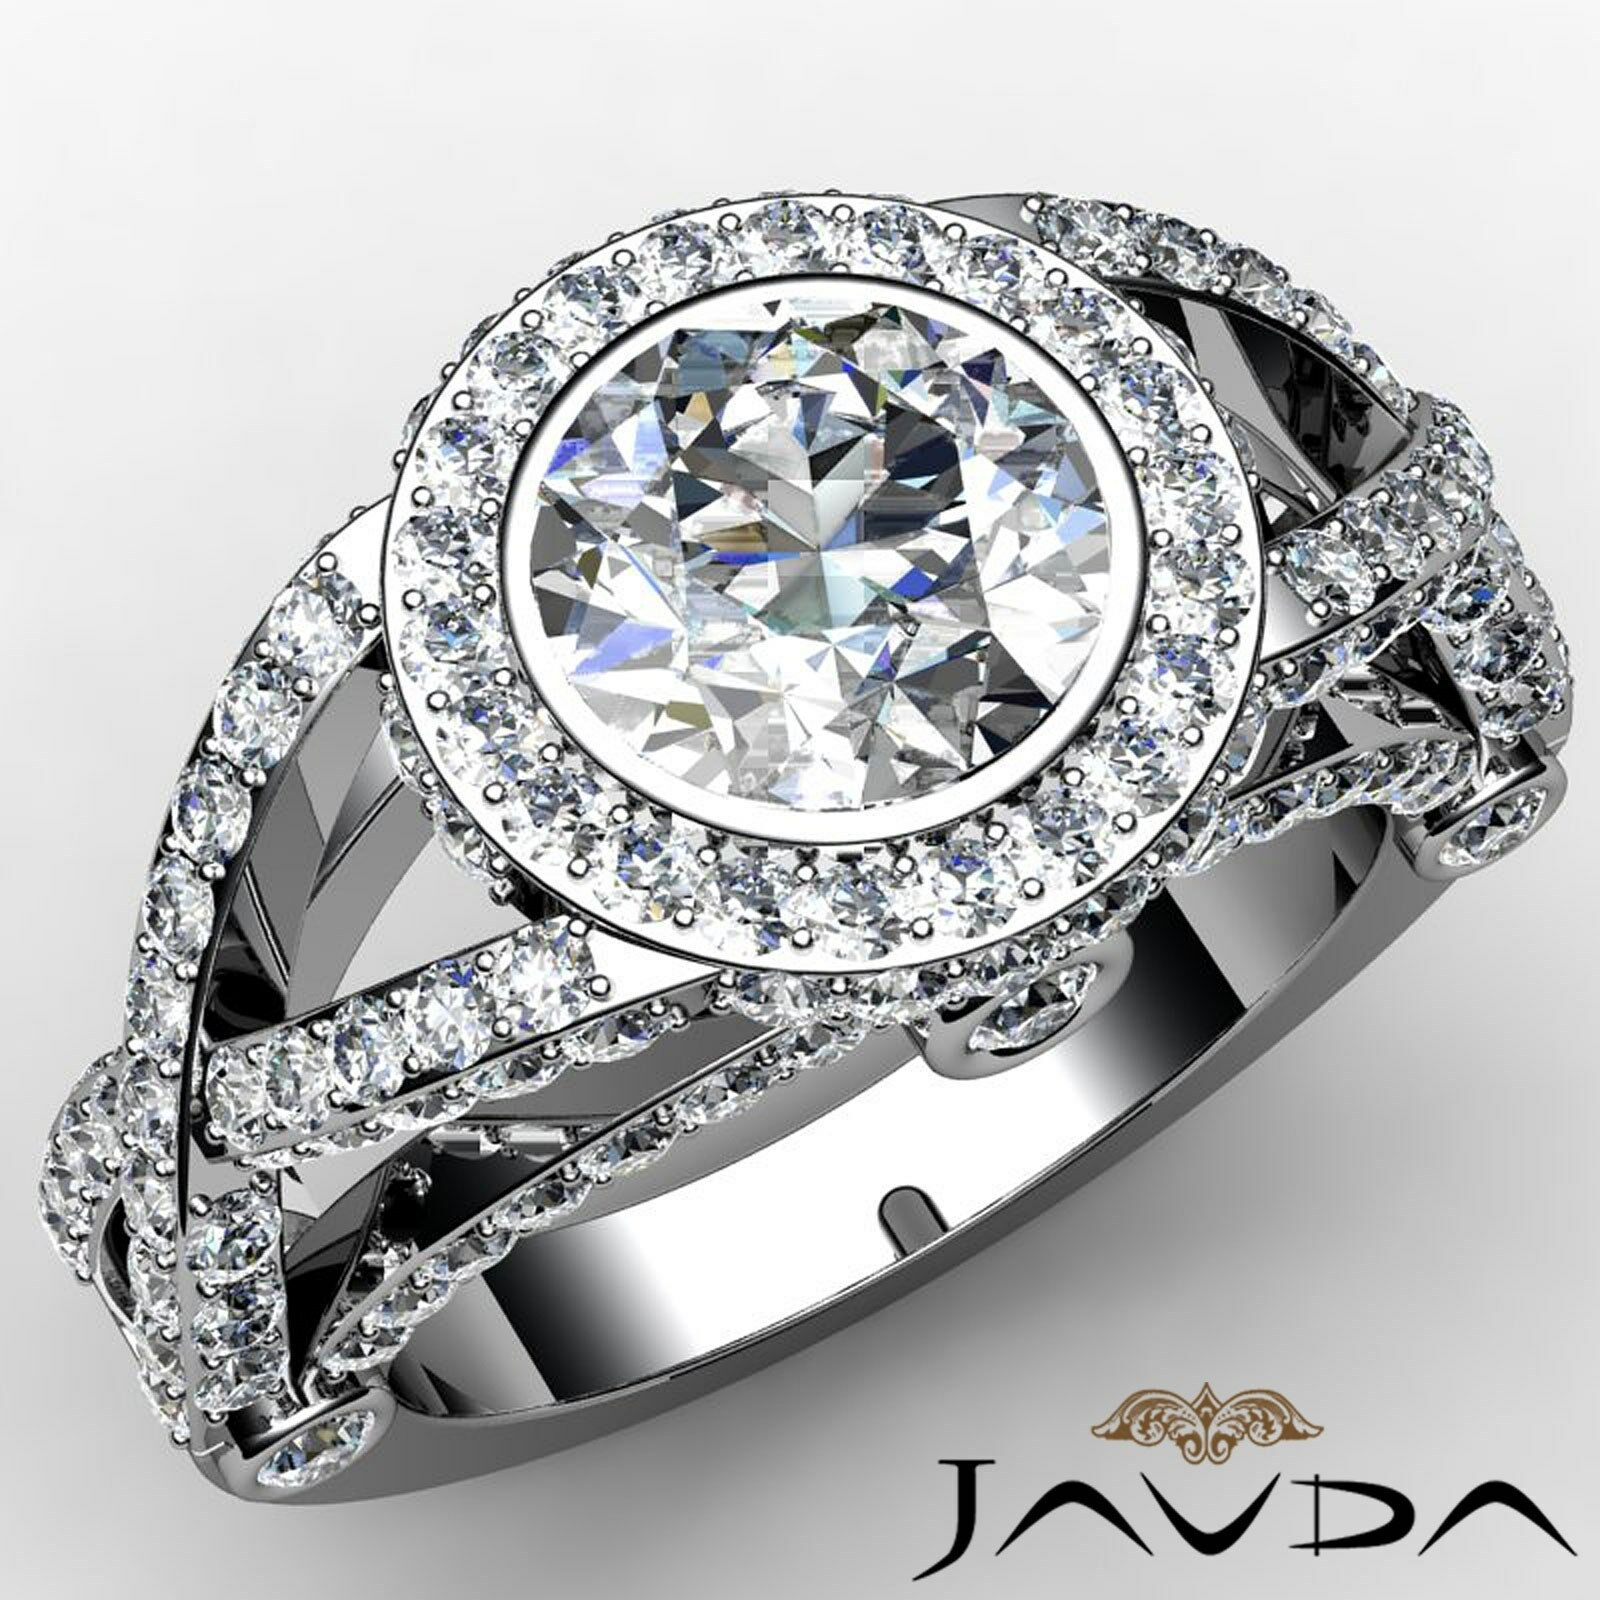 Cross Shank Halo Pave Bezel Set Round Diamond Engagement Ring GIA I SI1 2.97Ct